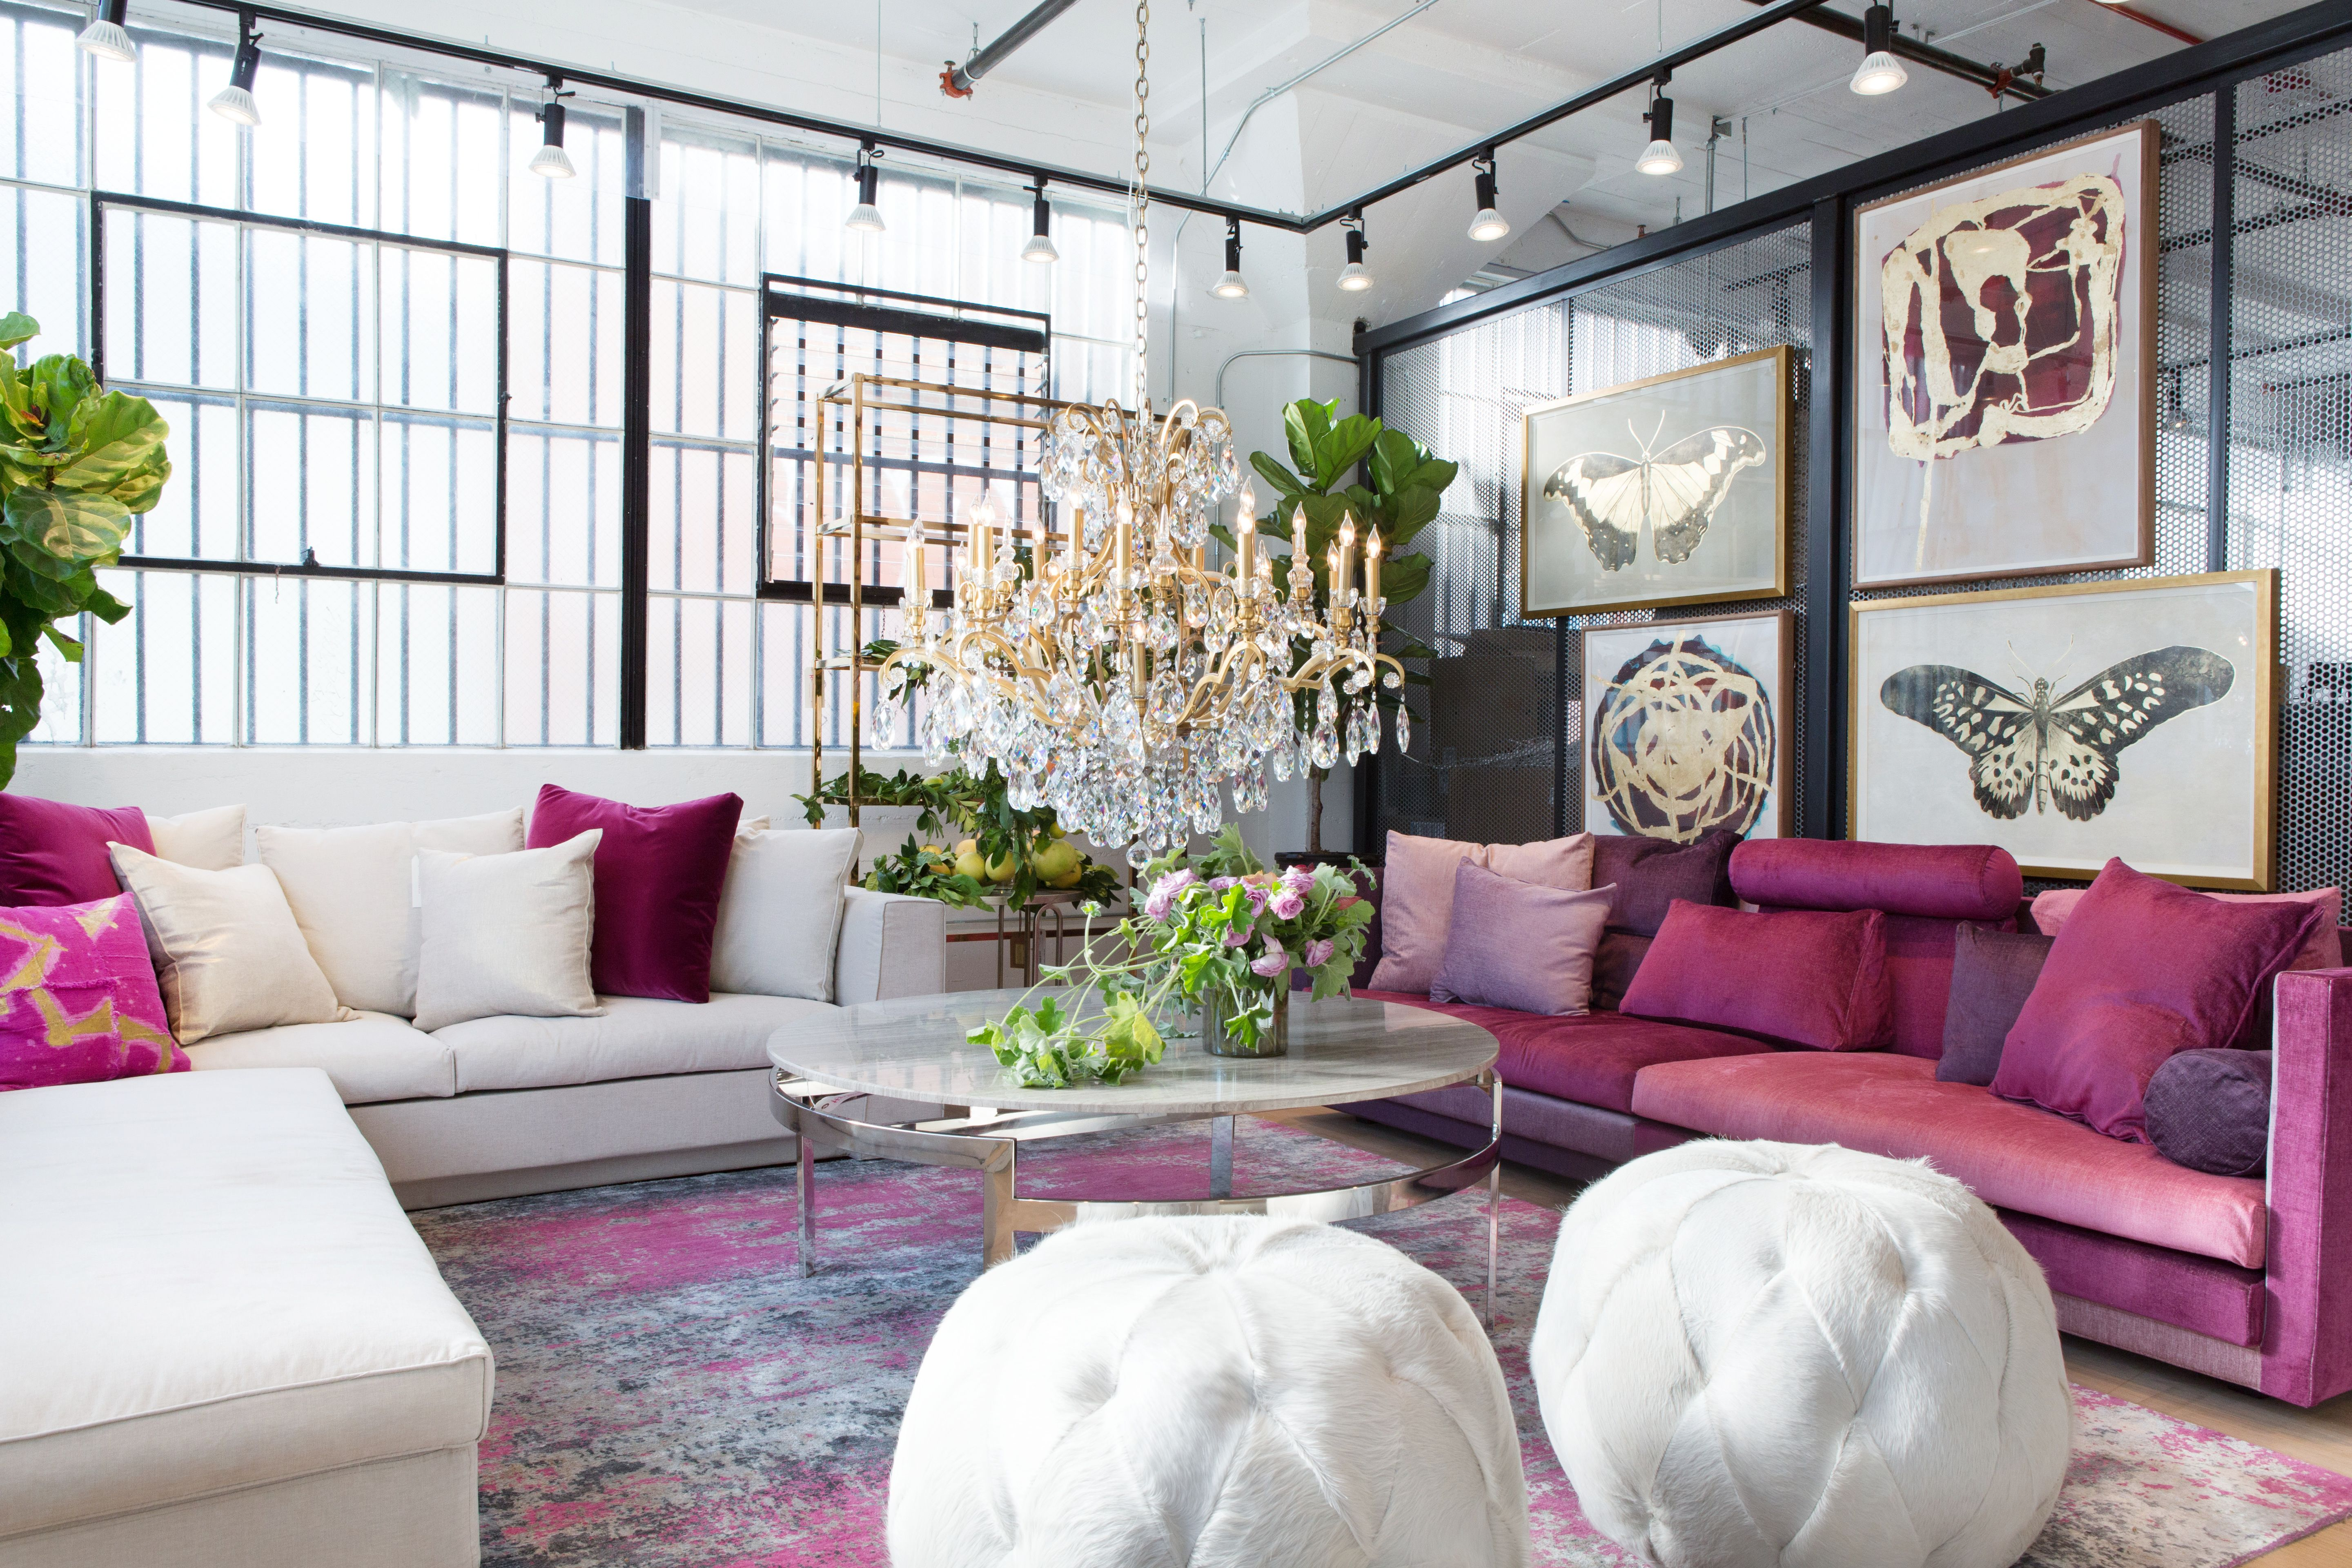 Furniture Stores Los Angeles Hd Buttercup Downtown La Visual